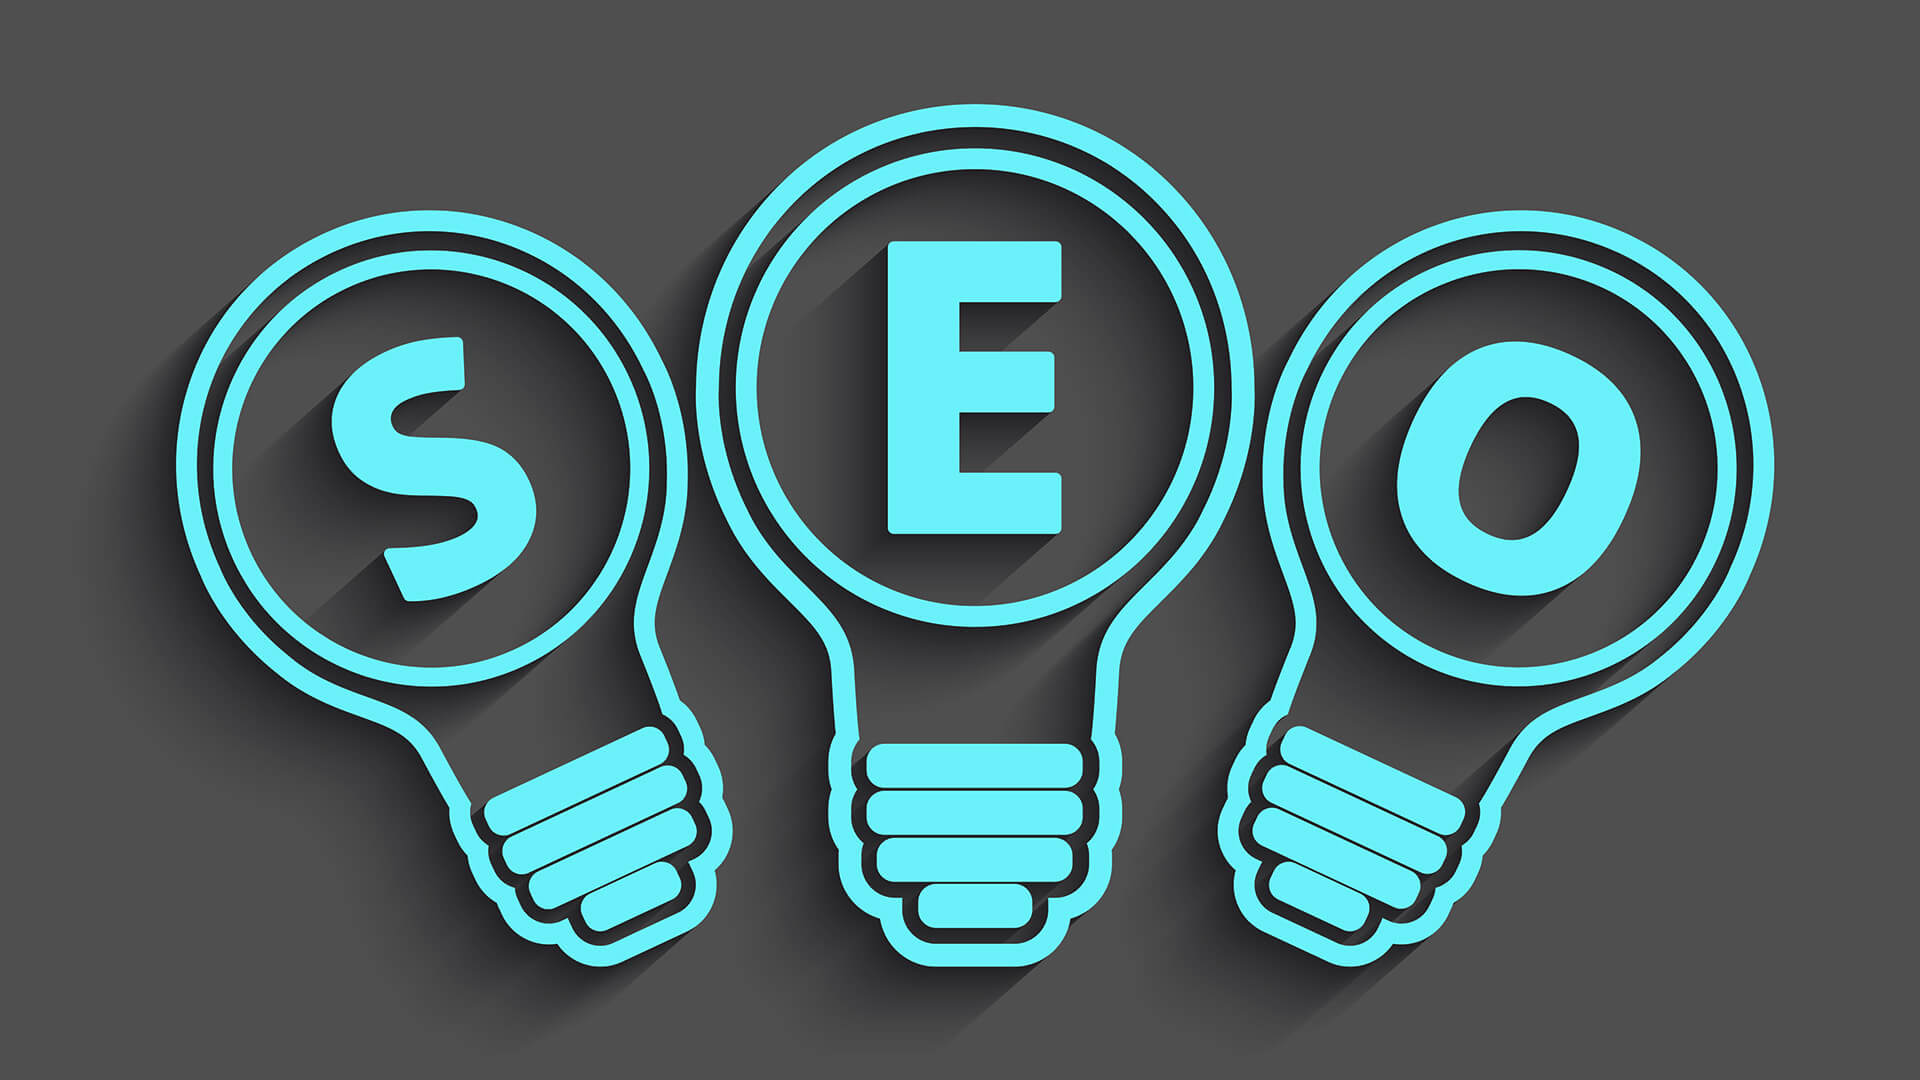 SEO IS IMPORTANT FOR ONLINE